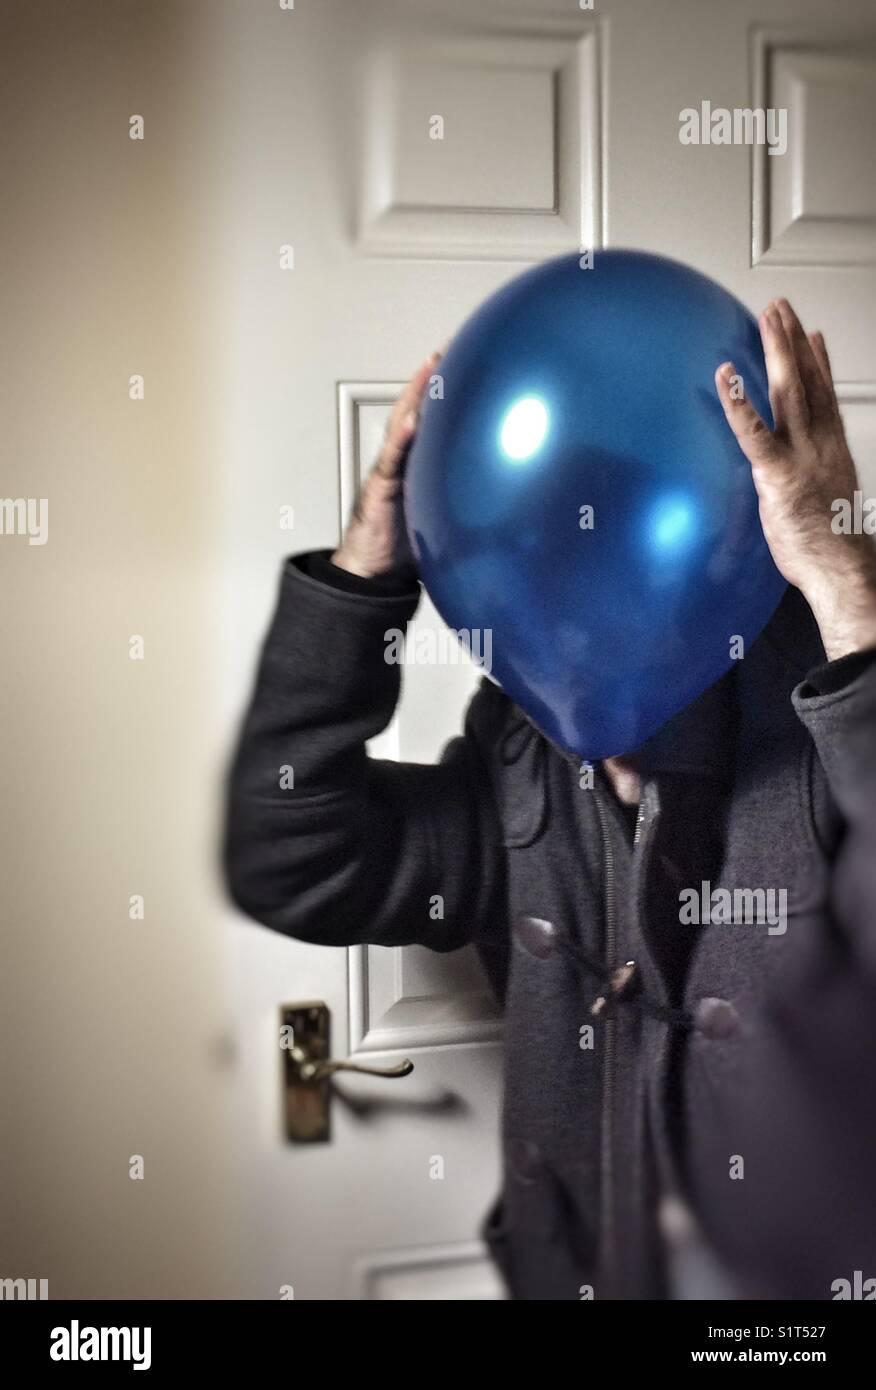 Mr Blue/baloon headache walking into the room - Stock Image